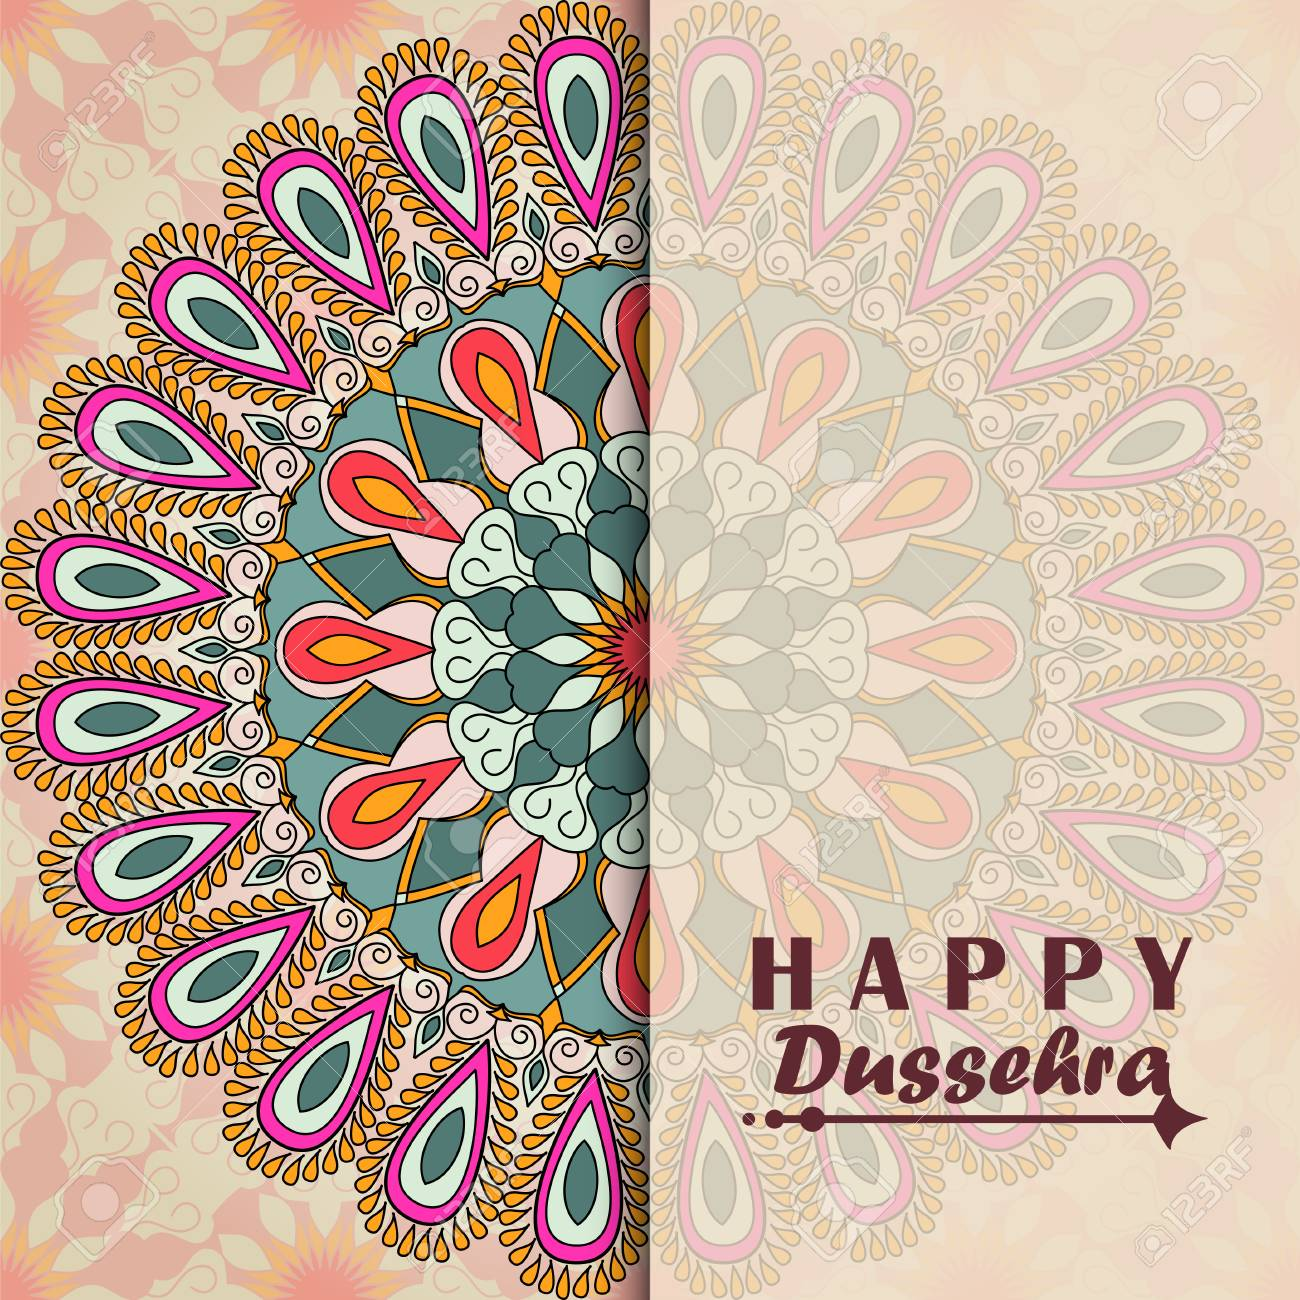 Vctor greeting card to indian festival vijayadashami happy dussehra vctor greeting card to indian festival vijayadashami happy dussehra congratulations background with text and m4hsunfo